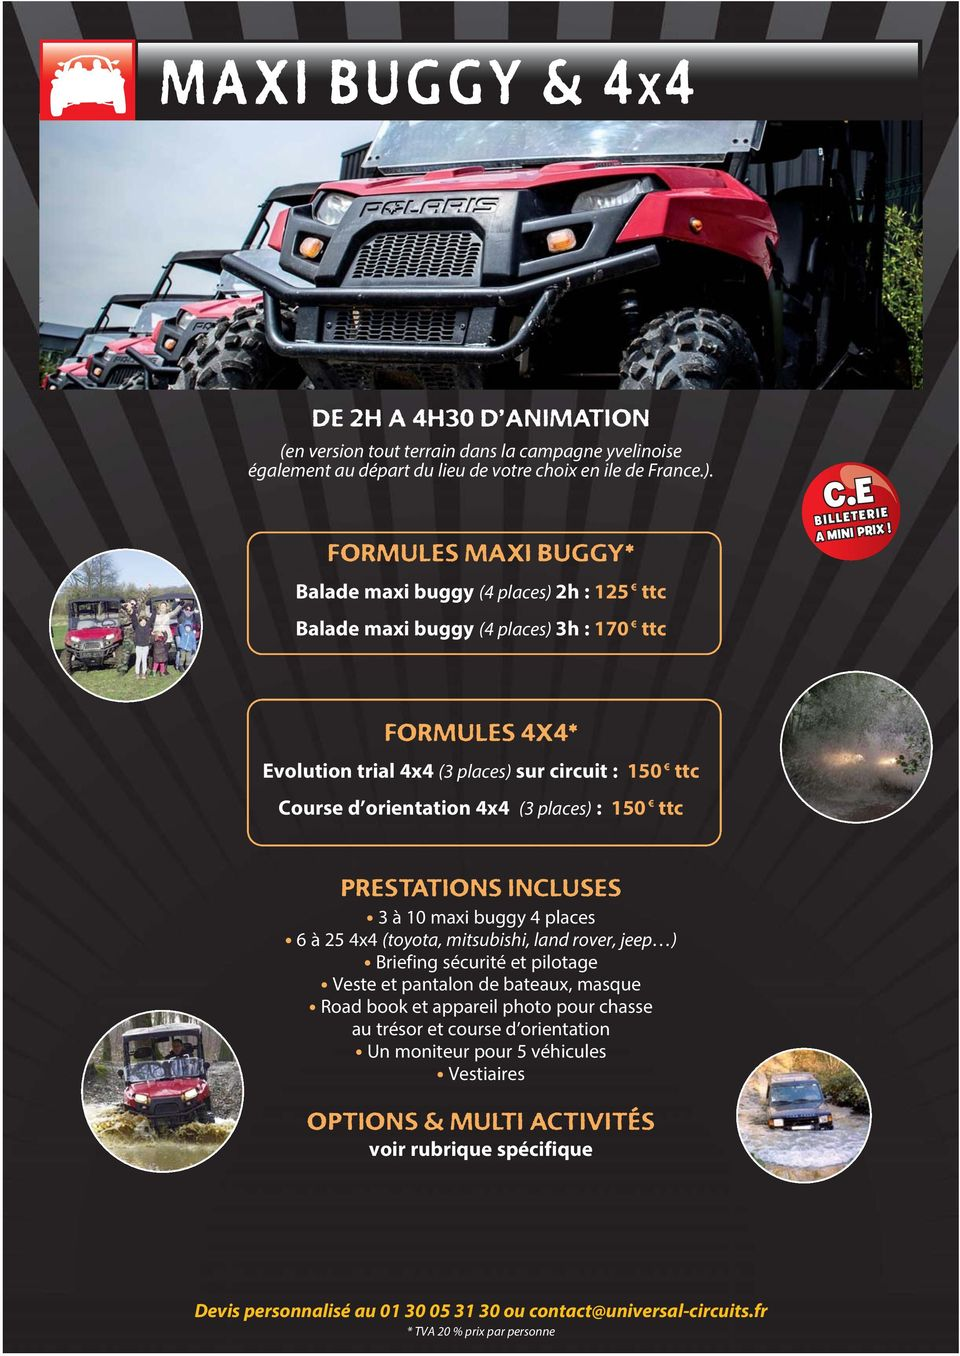 sur circuit : 150 ttc Course d orientation 4x4 (3 places) : 150 ttc 3 à 10 maxi buggy 4 places 6 à 25 4x4 (toyota, mitsubishi, land rover, jeep ) Briefing